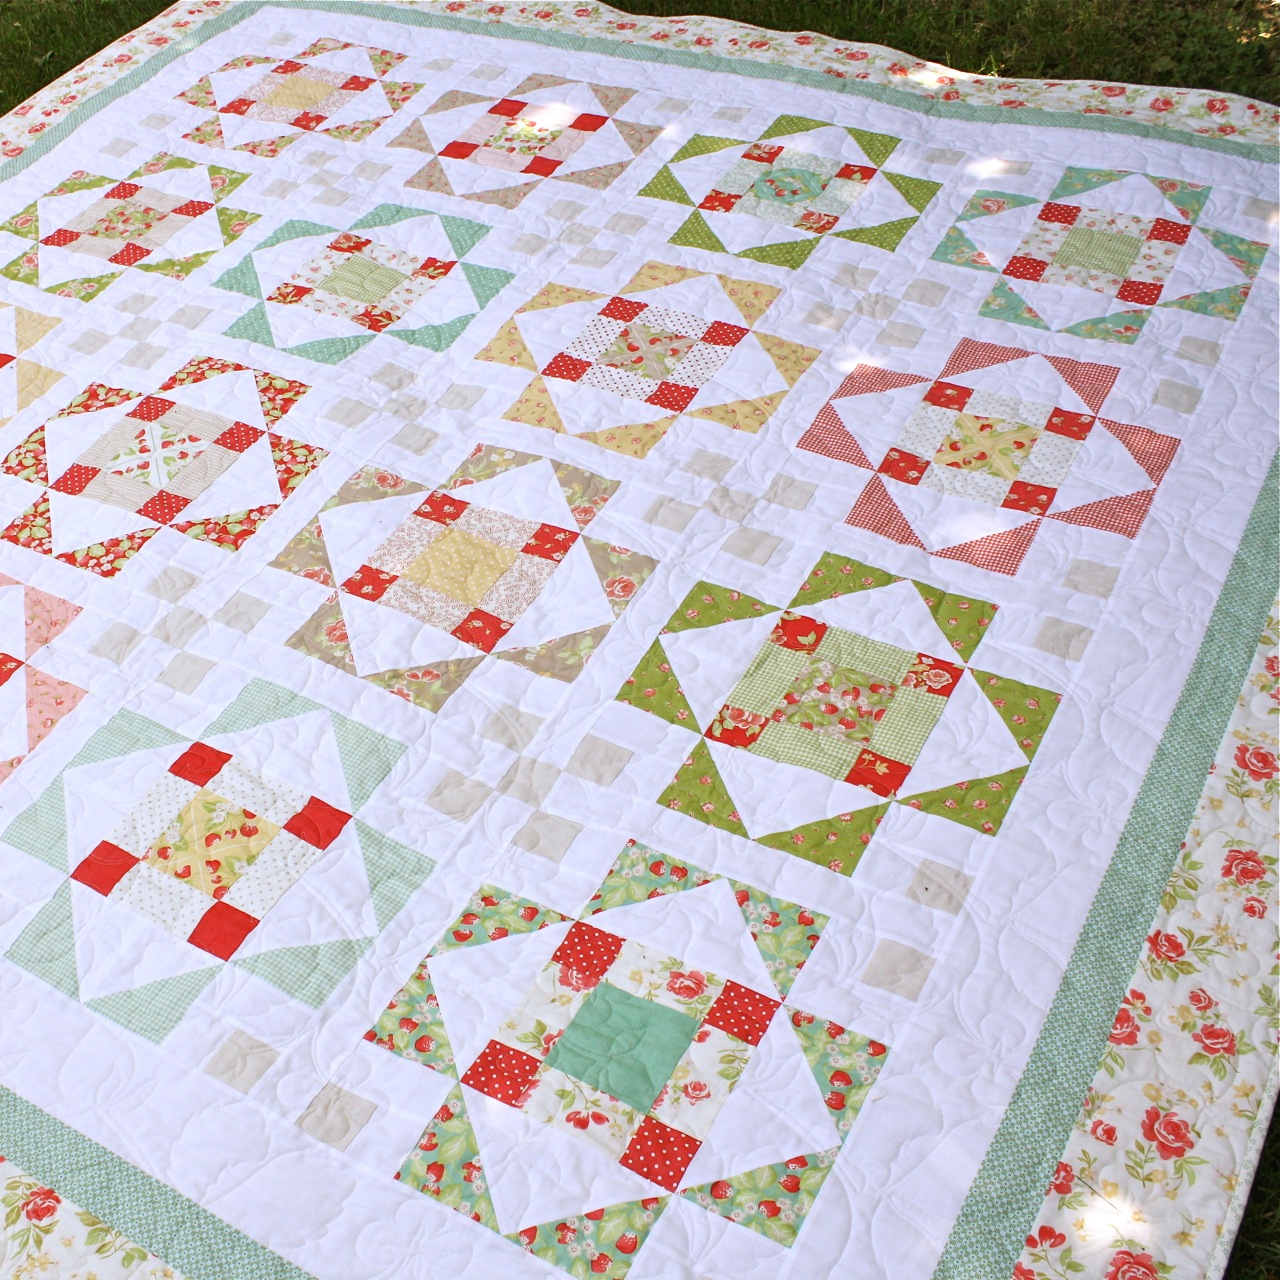 Cake Decorating Quilt Design : Bloom: Summer s Blush - a new layer cake PDF quilt pattern